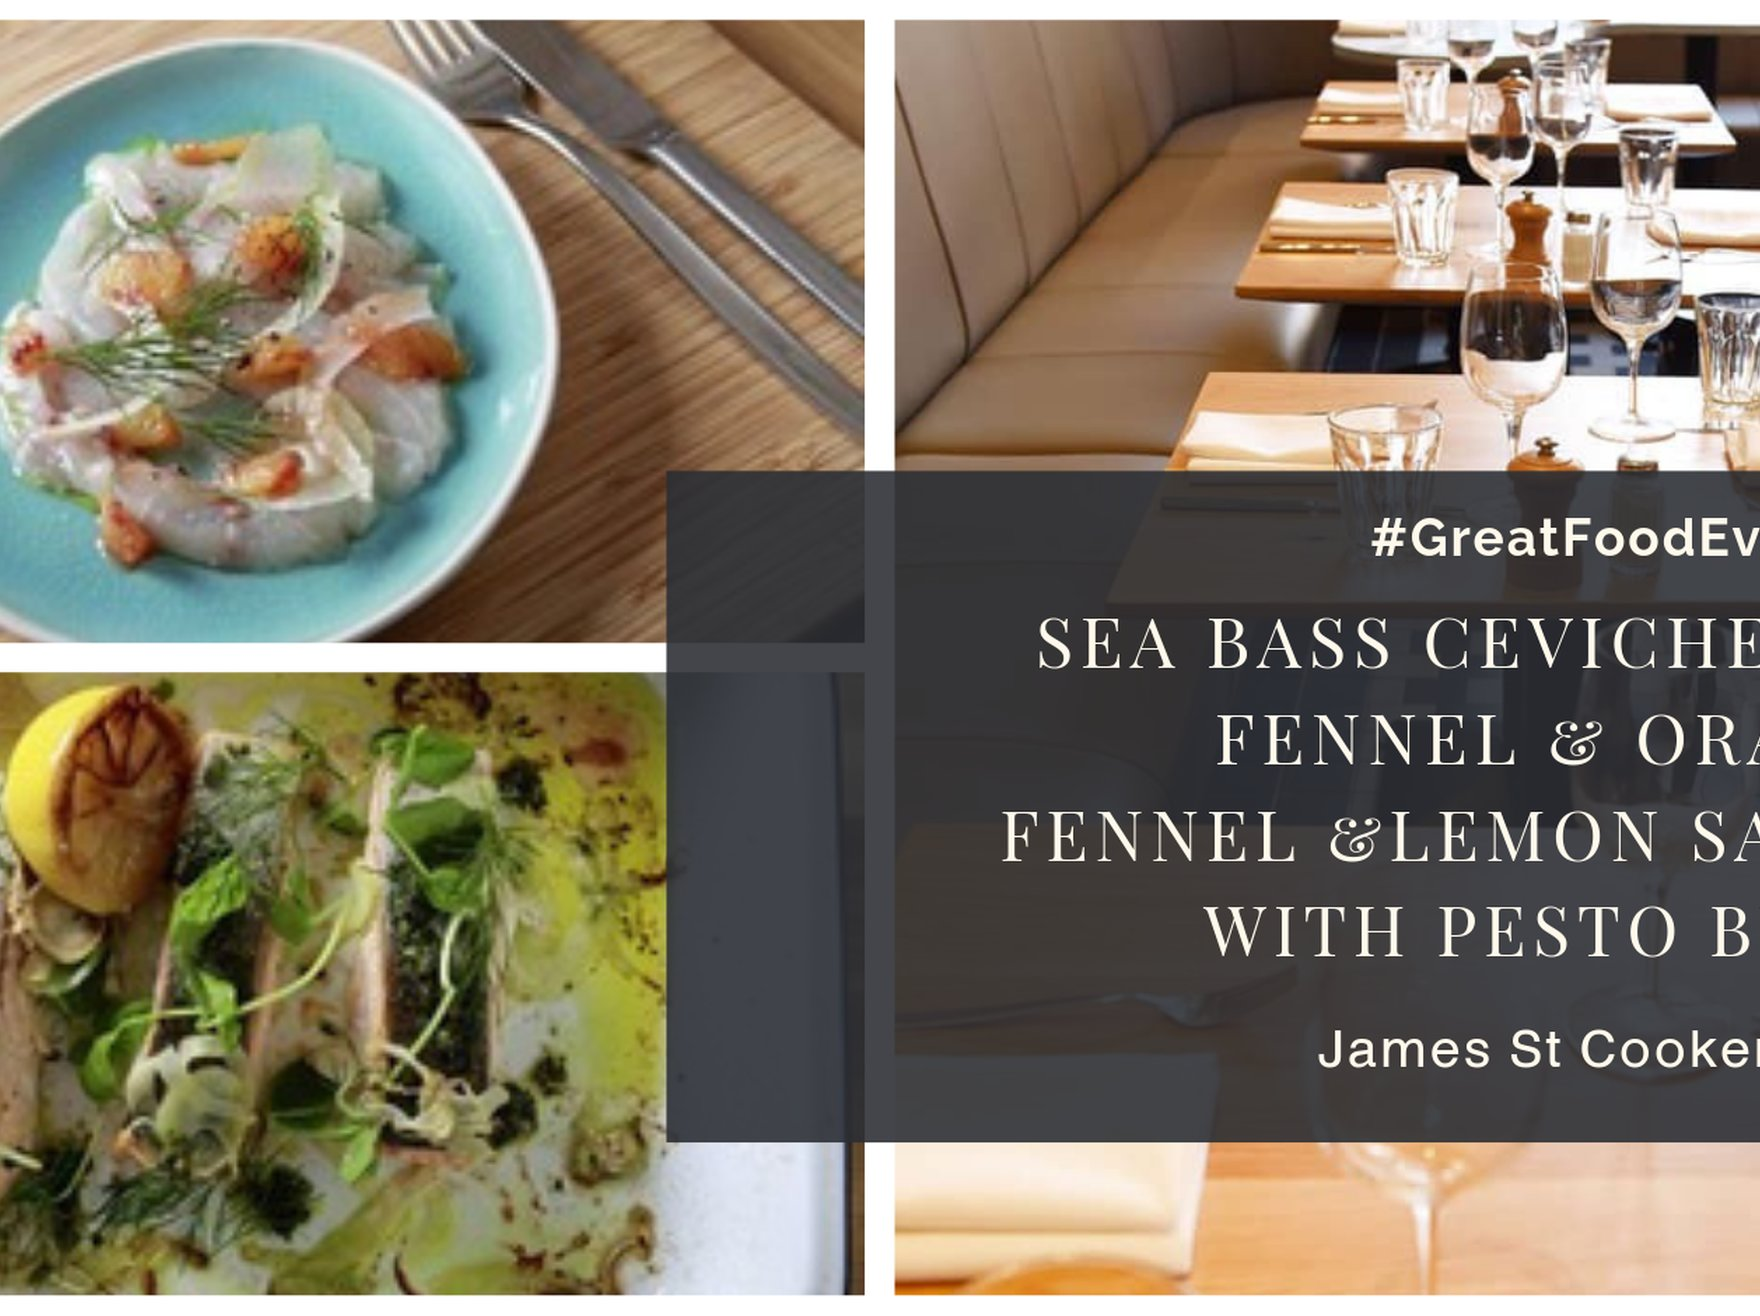 Sea bass ceviche with fennel and orange; Fennel and lemon salmon with pesto butter